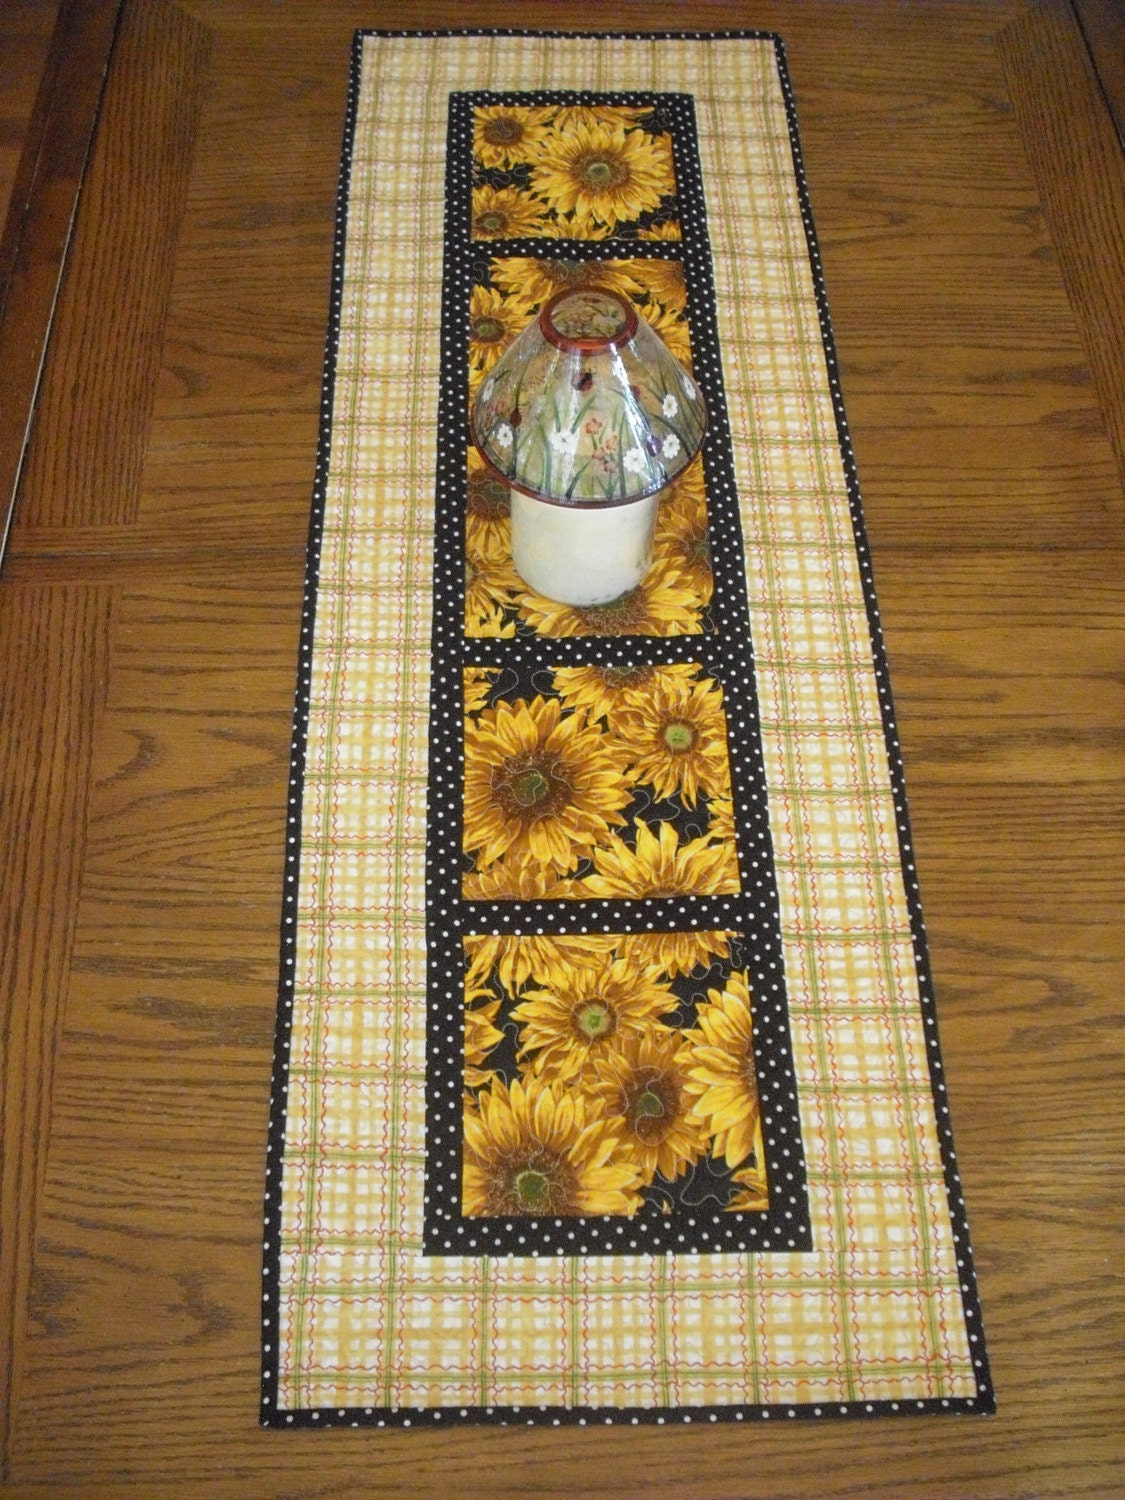 Beautiful sunflower quilted table runner for Table runner quilt design